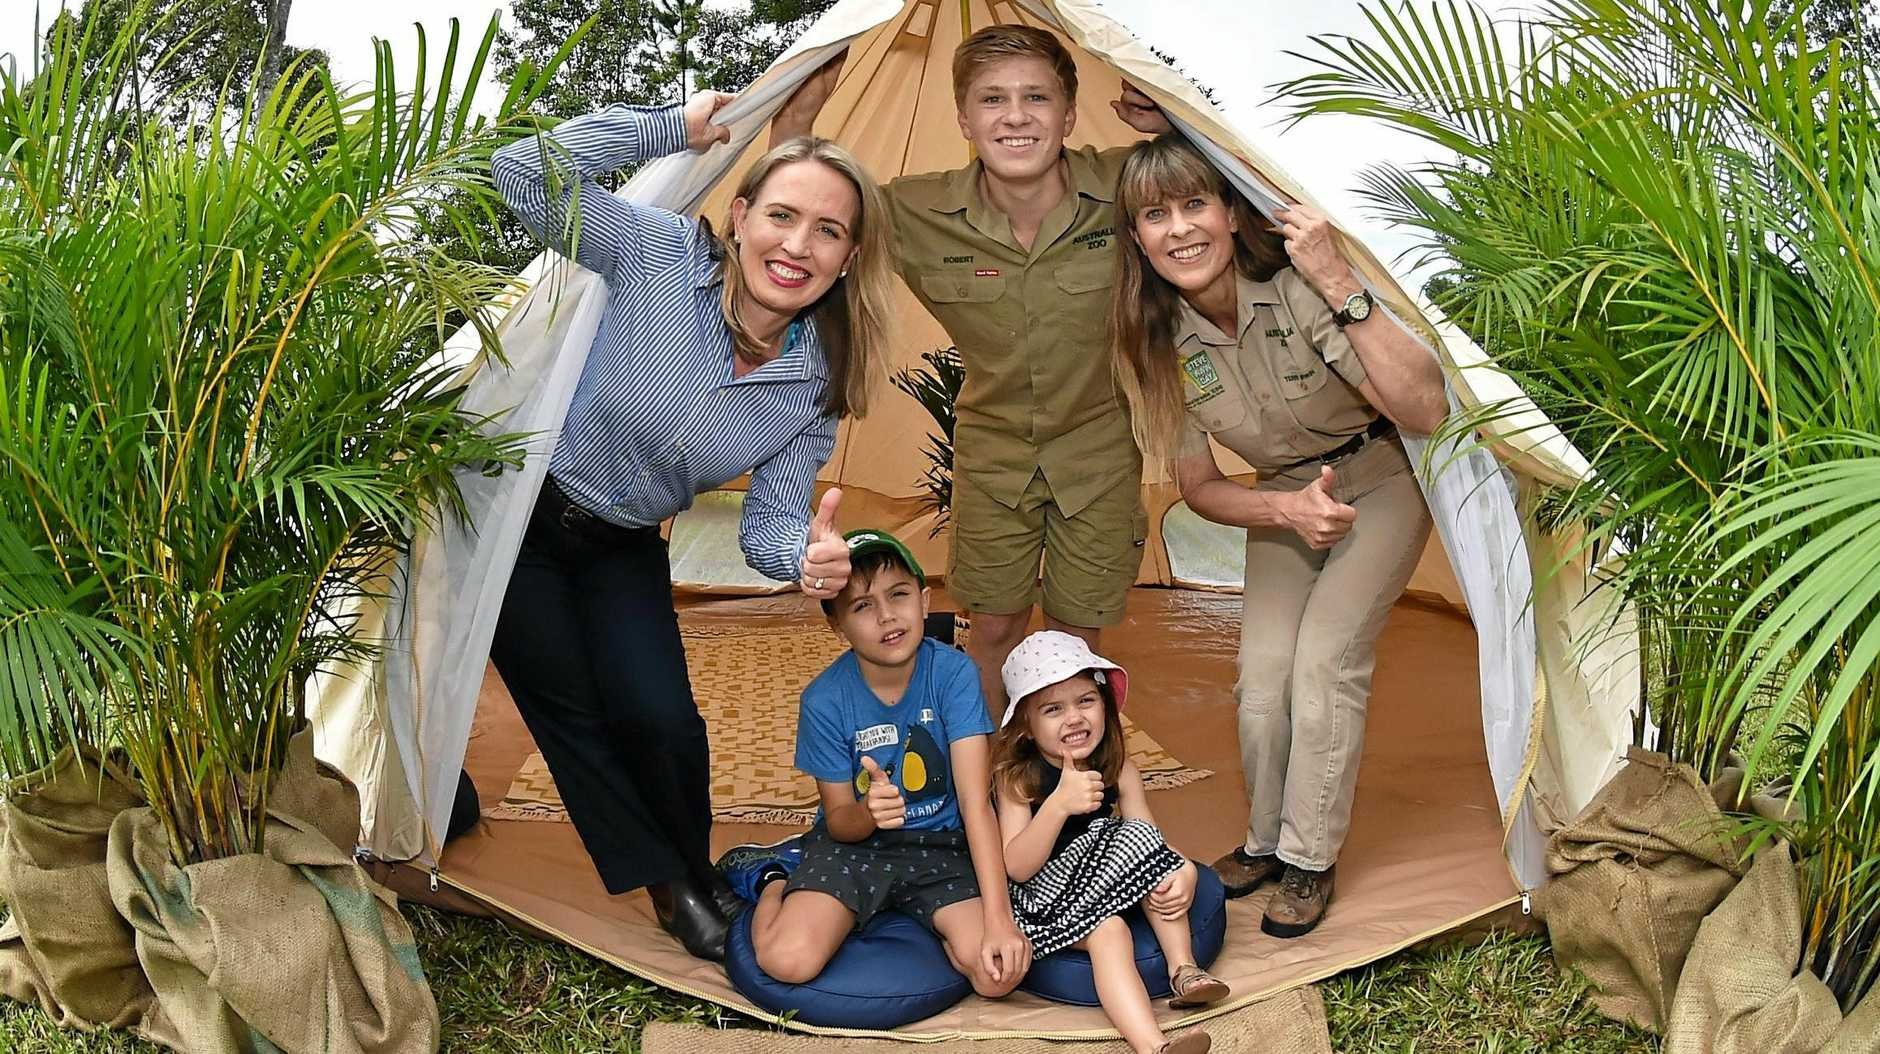 GLAMPING: Australia Zoo has partnered with the Queensland Government to introduce camp-style accommodation at Australia Zoo. Tourism Industry Development Minister Kate Jones, Tom and Grace Cronin with Robert and Terri Irwin.